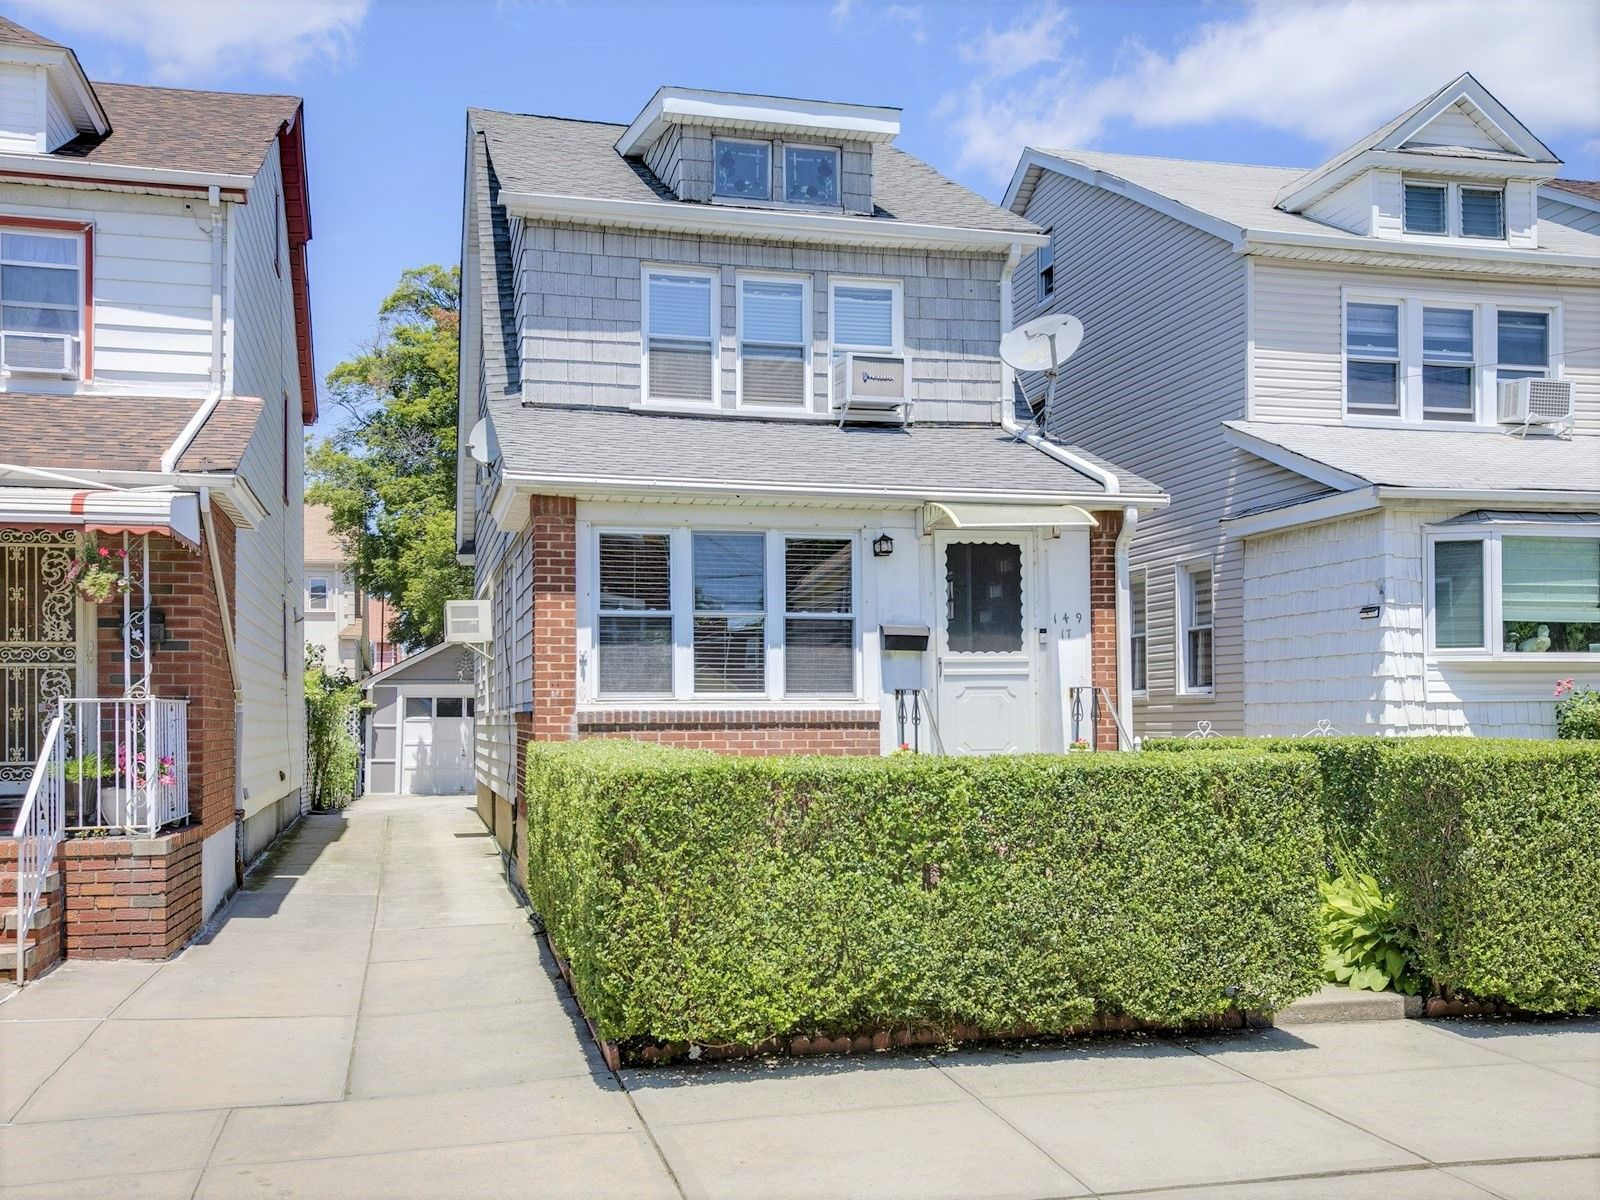 14917 20th Rd, Flushing, NY 11357 House styles, Mansions